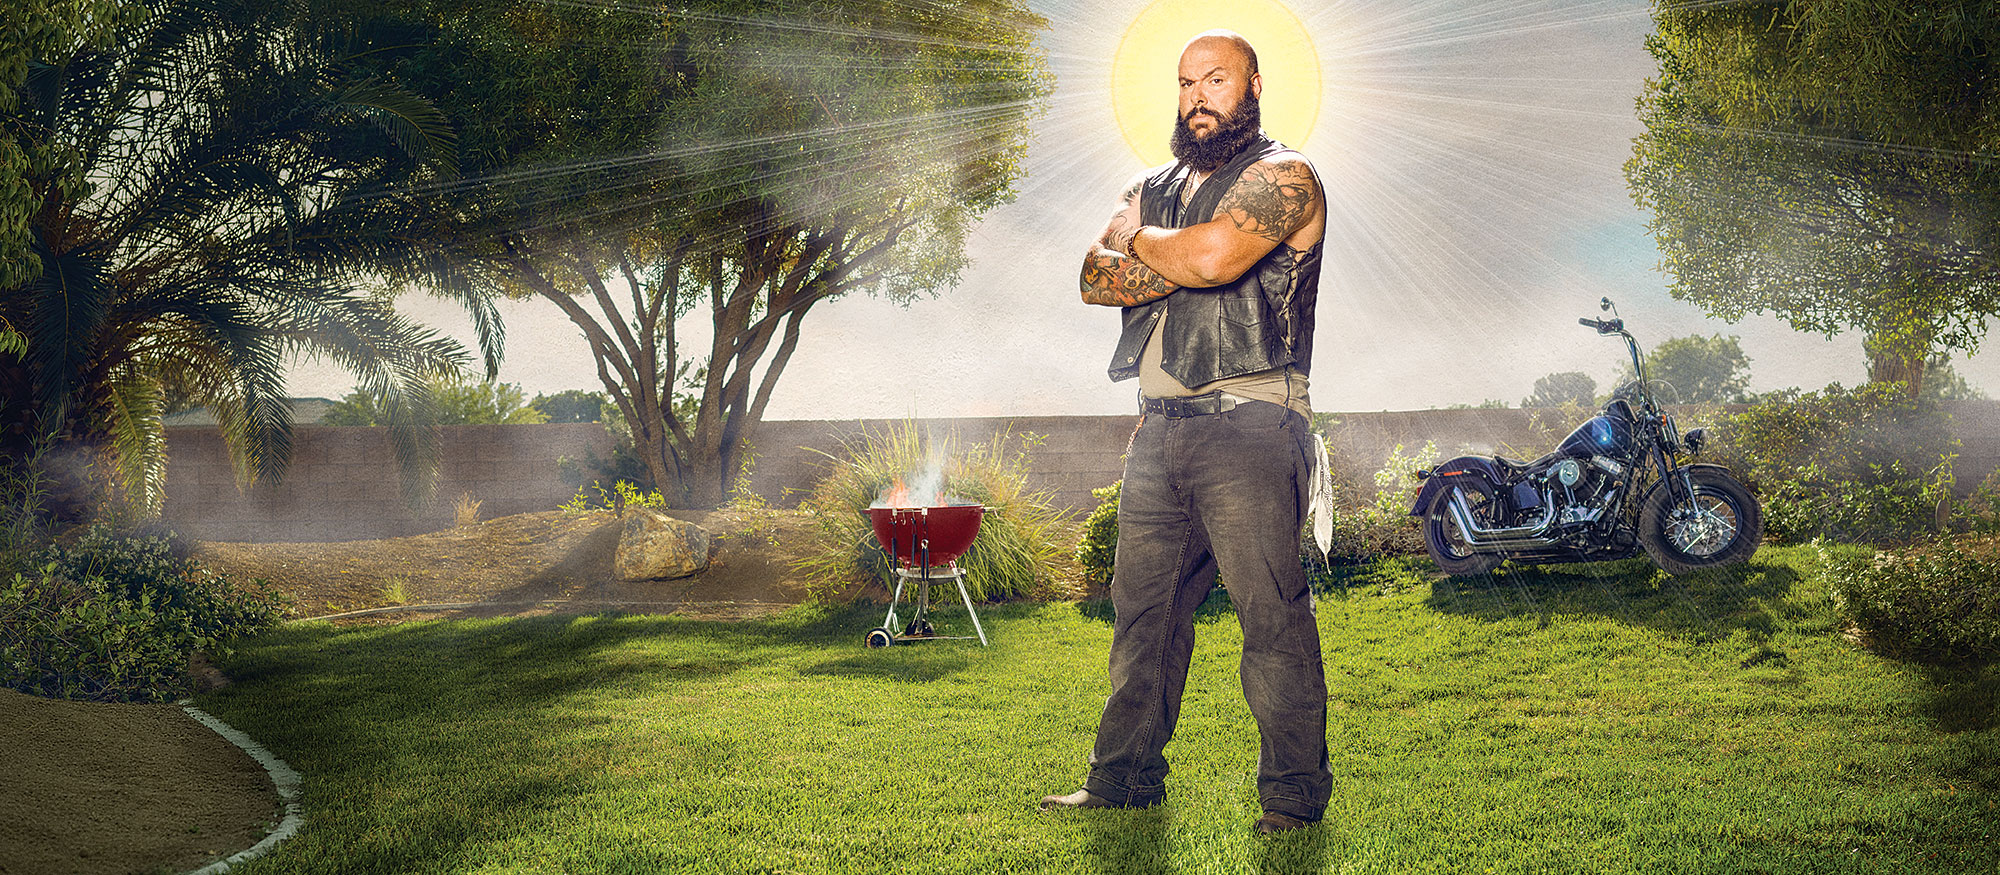 A biker stands on his lawn with a sun shining behind him, making him look like an angel